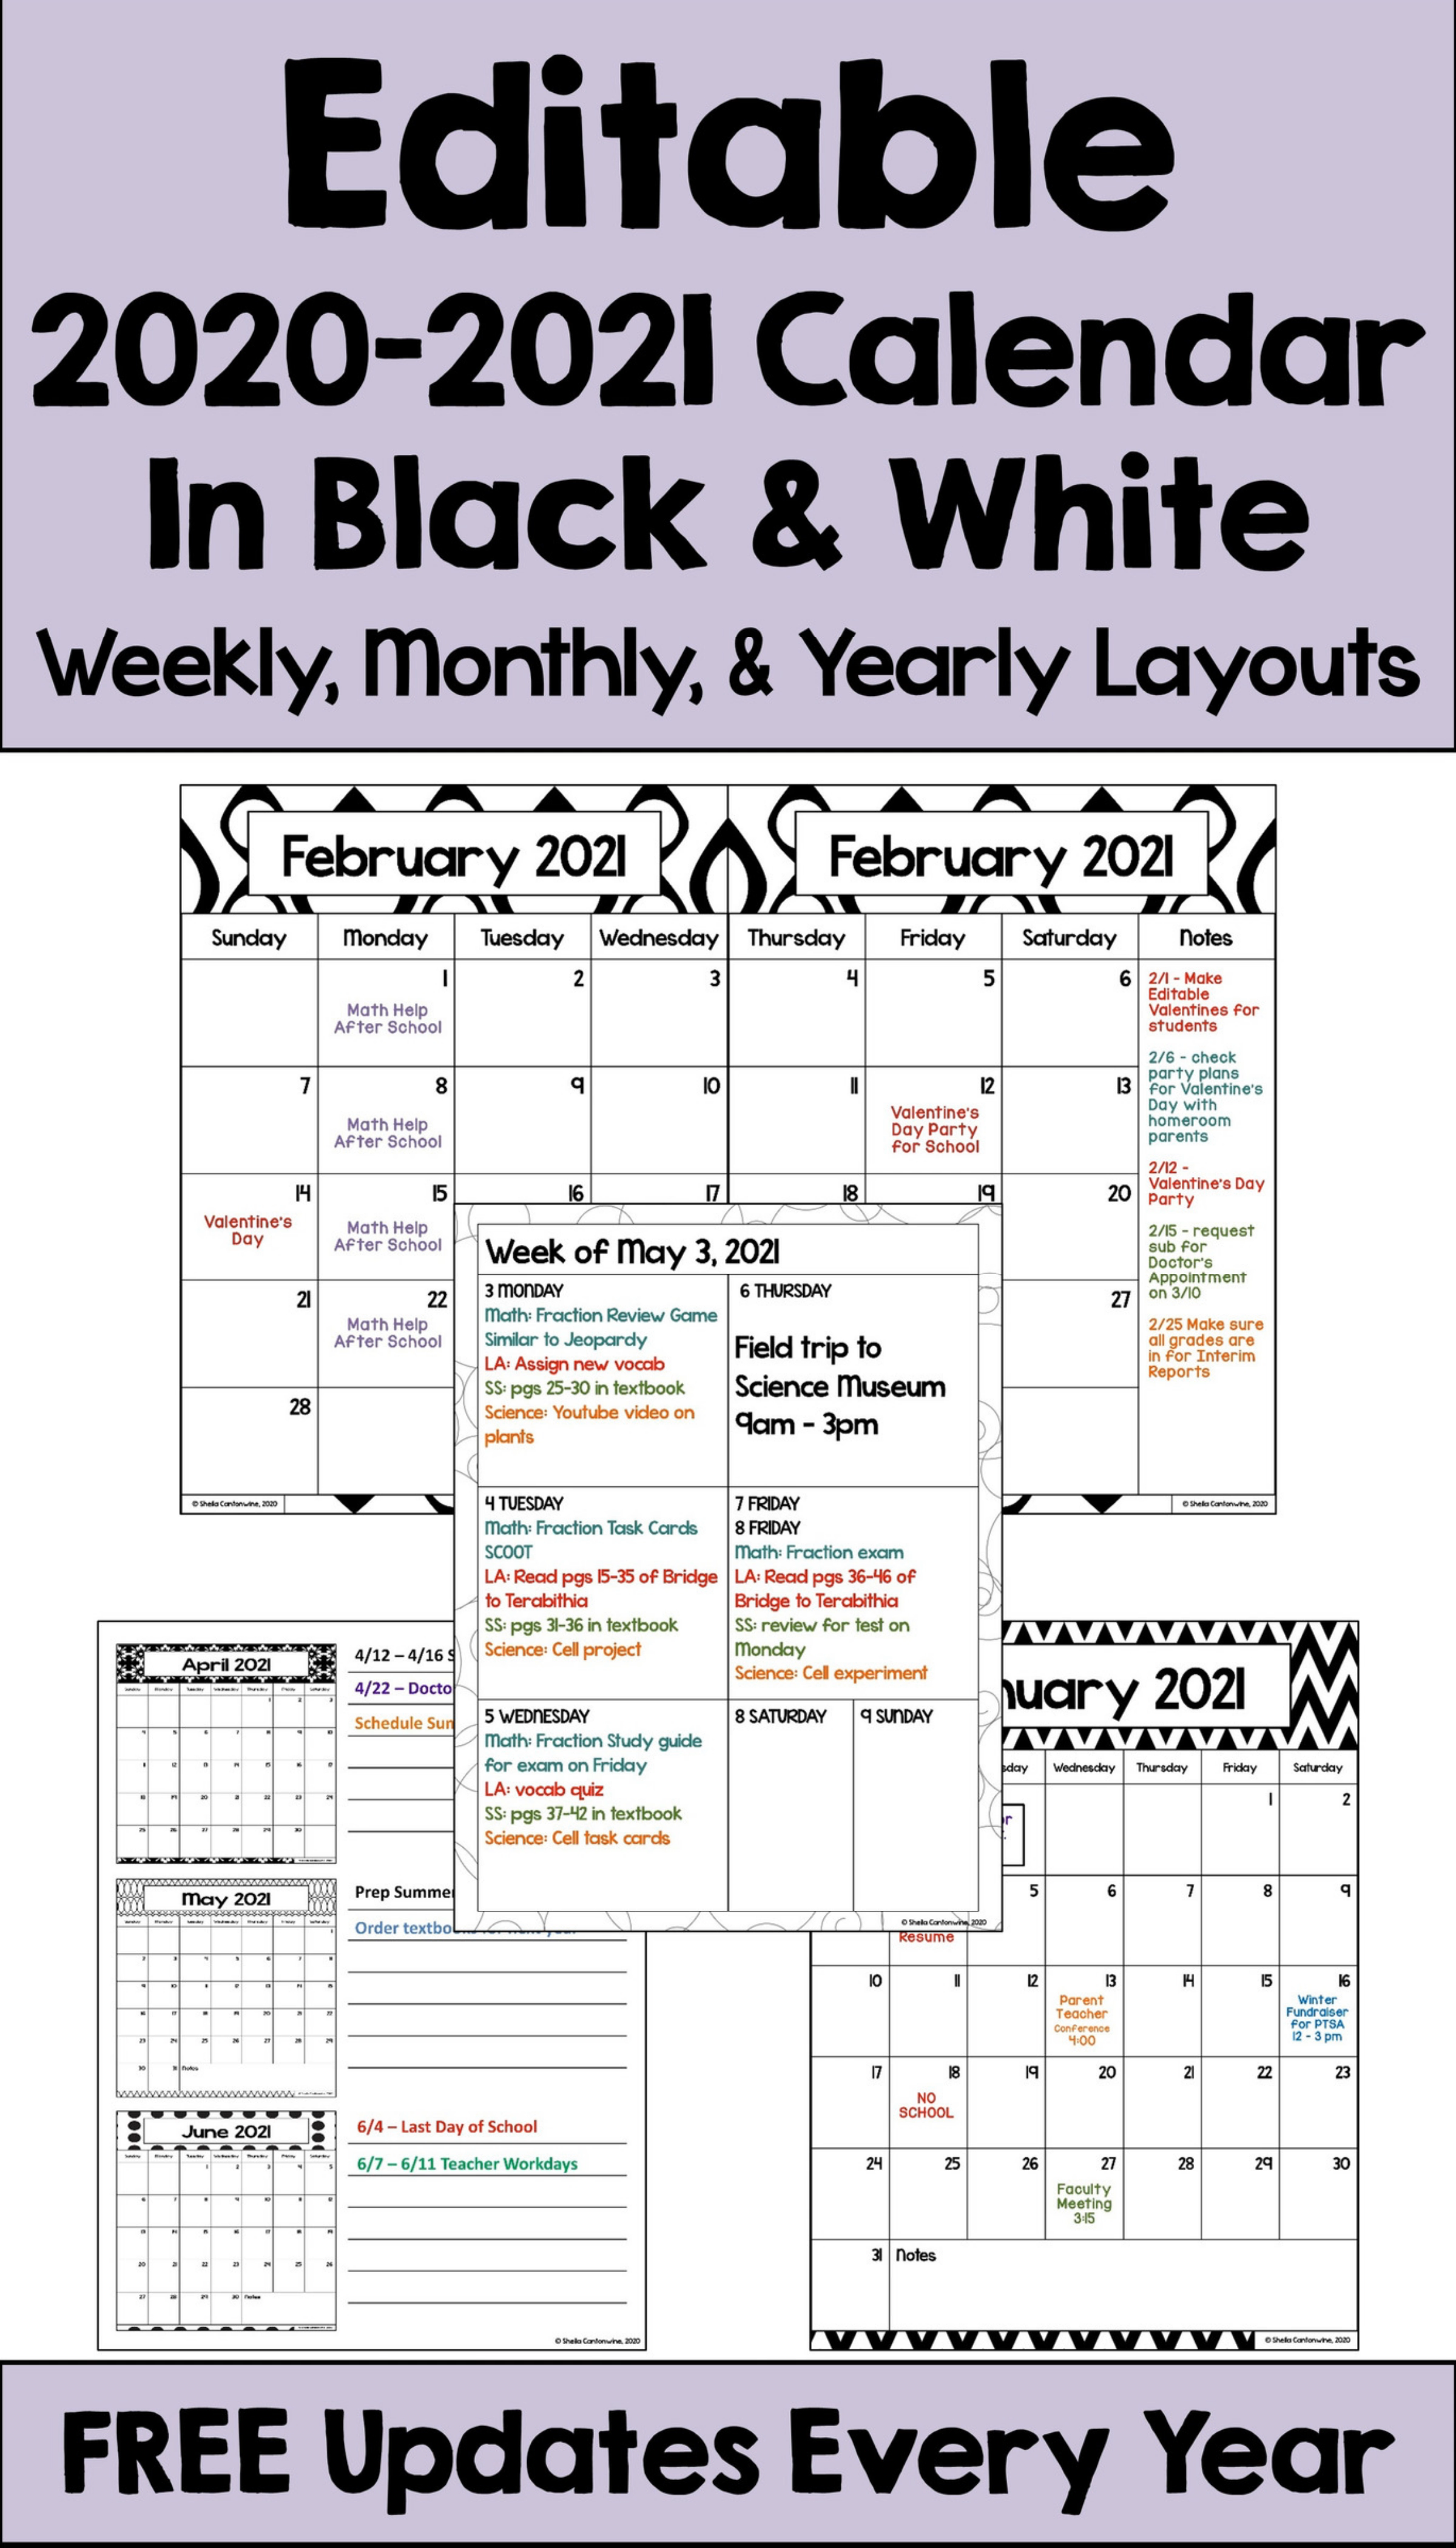 2020 2021 Calendar Printable And Editable With Free Updates In Black And White Video Video In 2020 Elementary School Math Activities Homeschool Programs School Calendar